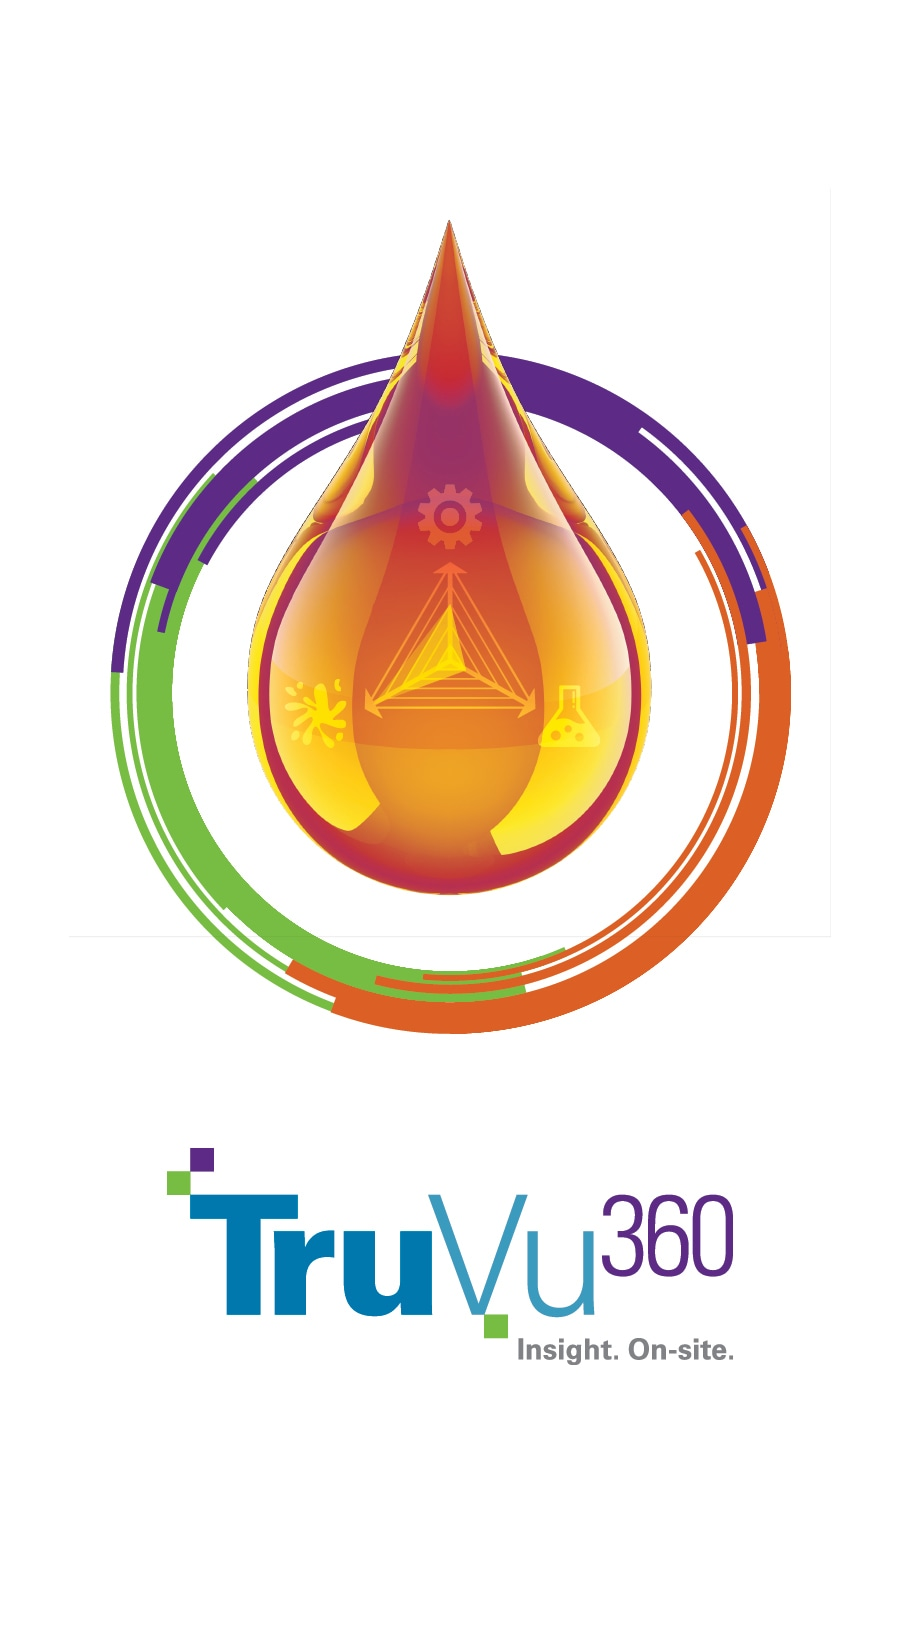 Spectro Scientific Introduces TruVu 360™ Enterprise Fluid Intelligence Platform A New and Holistic Approach to On-Site Oil Analysis